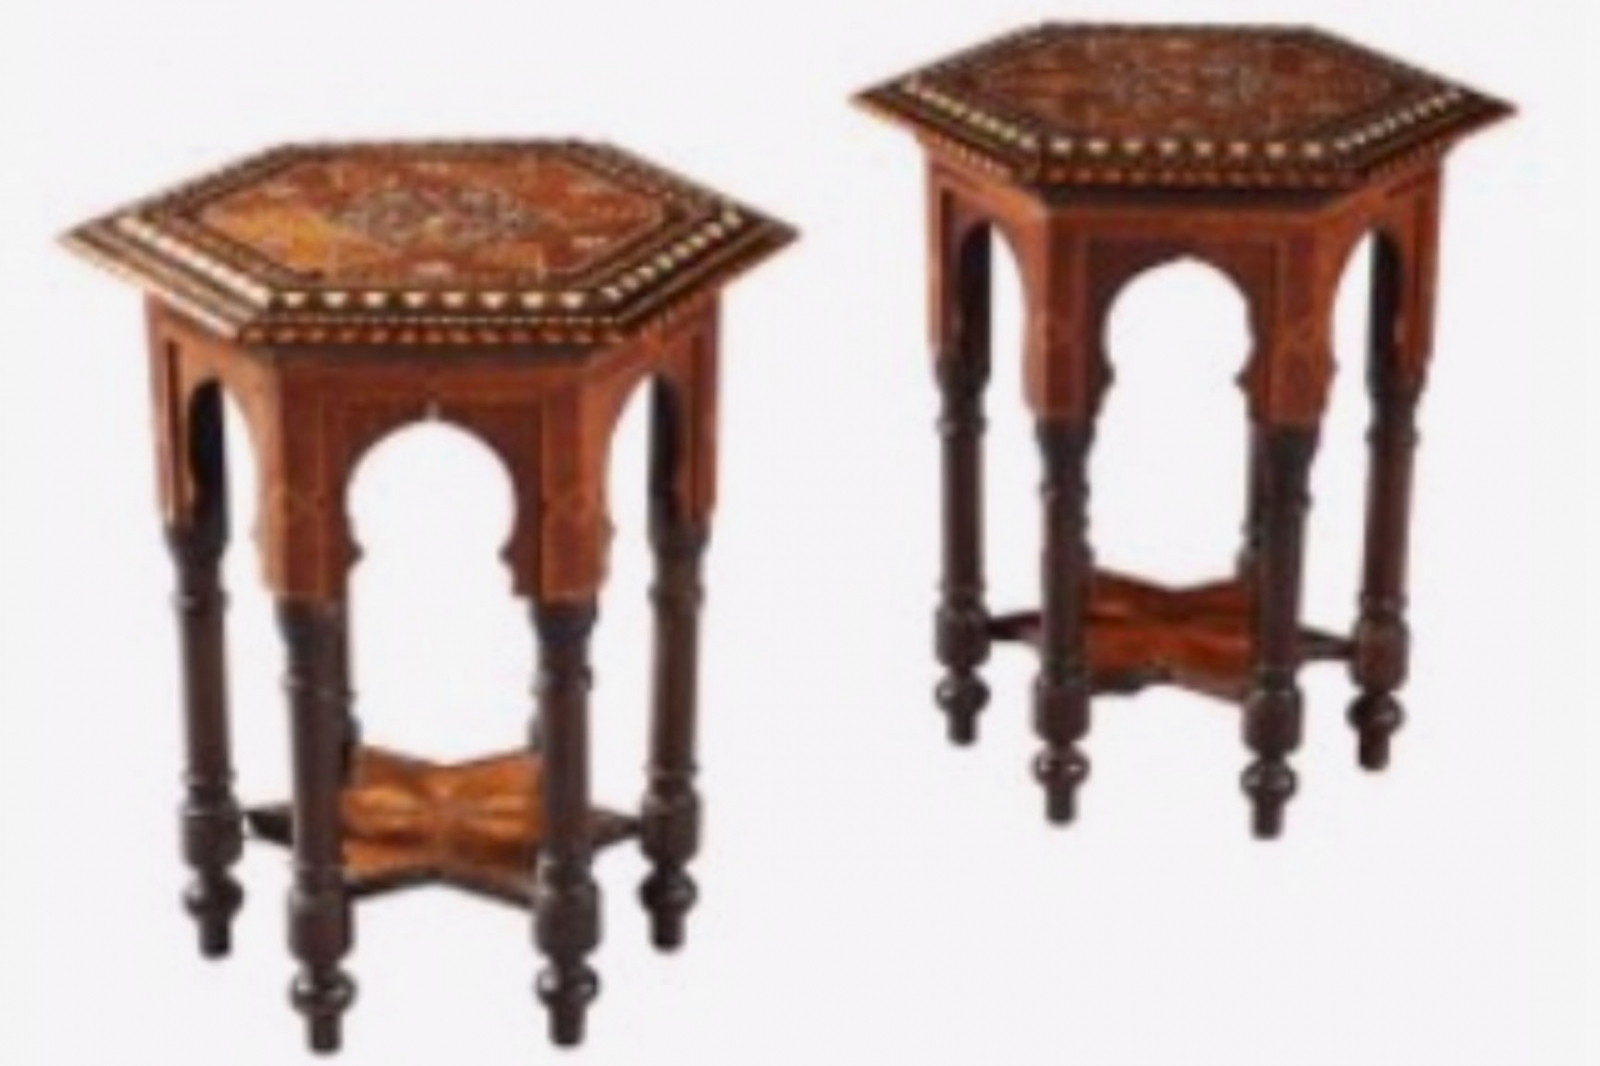 Occasional Tables in the Moorish Taste with Bone Inlay